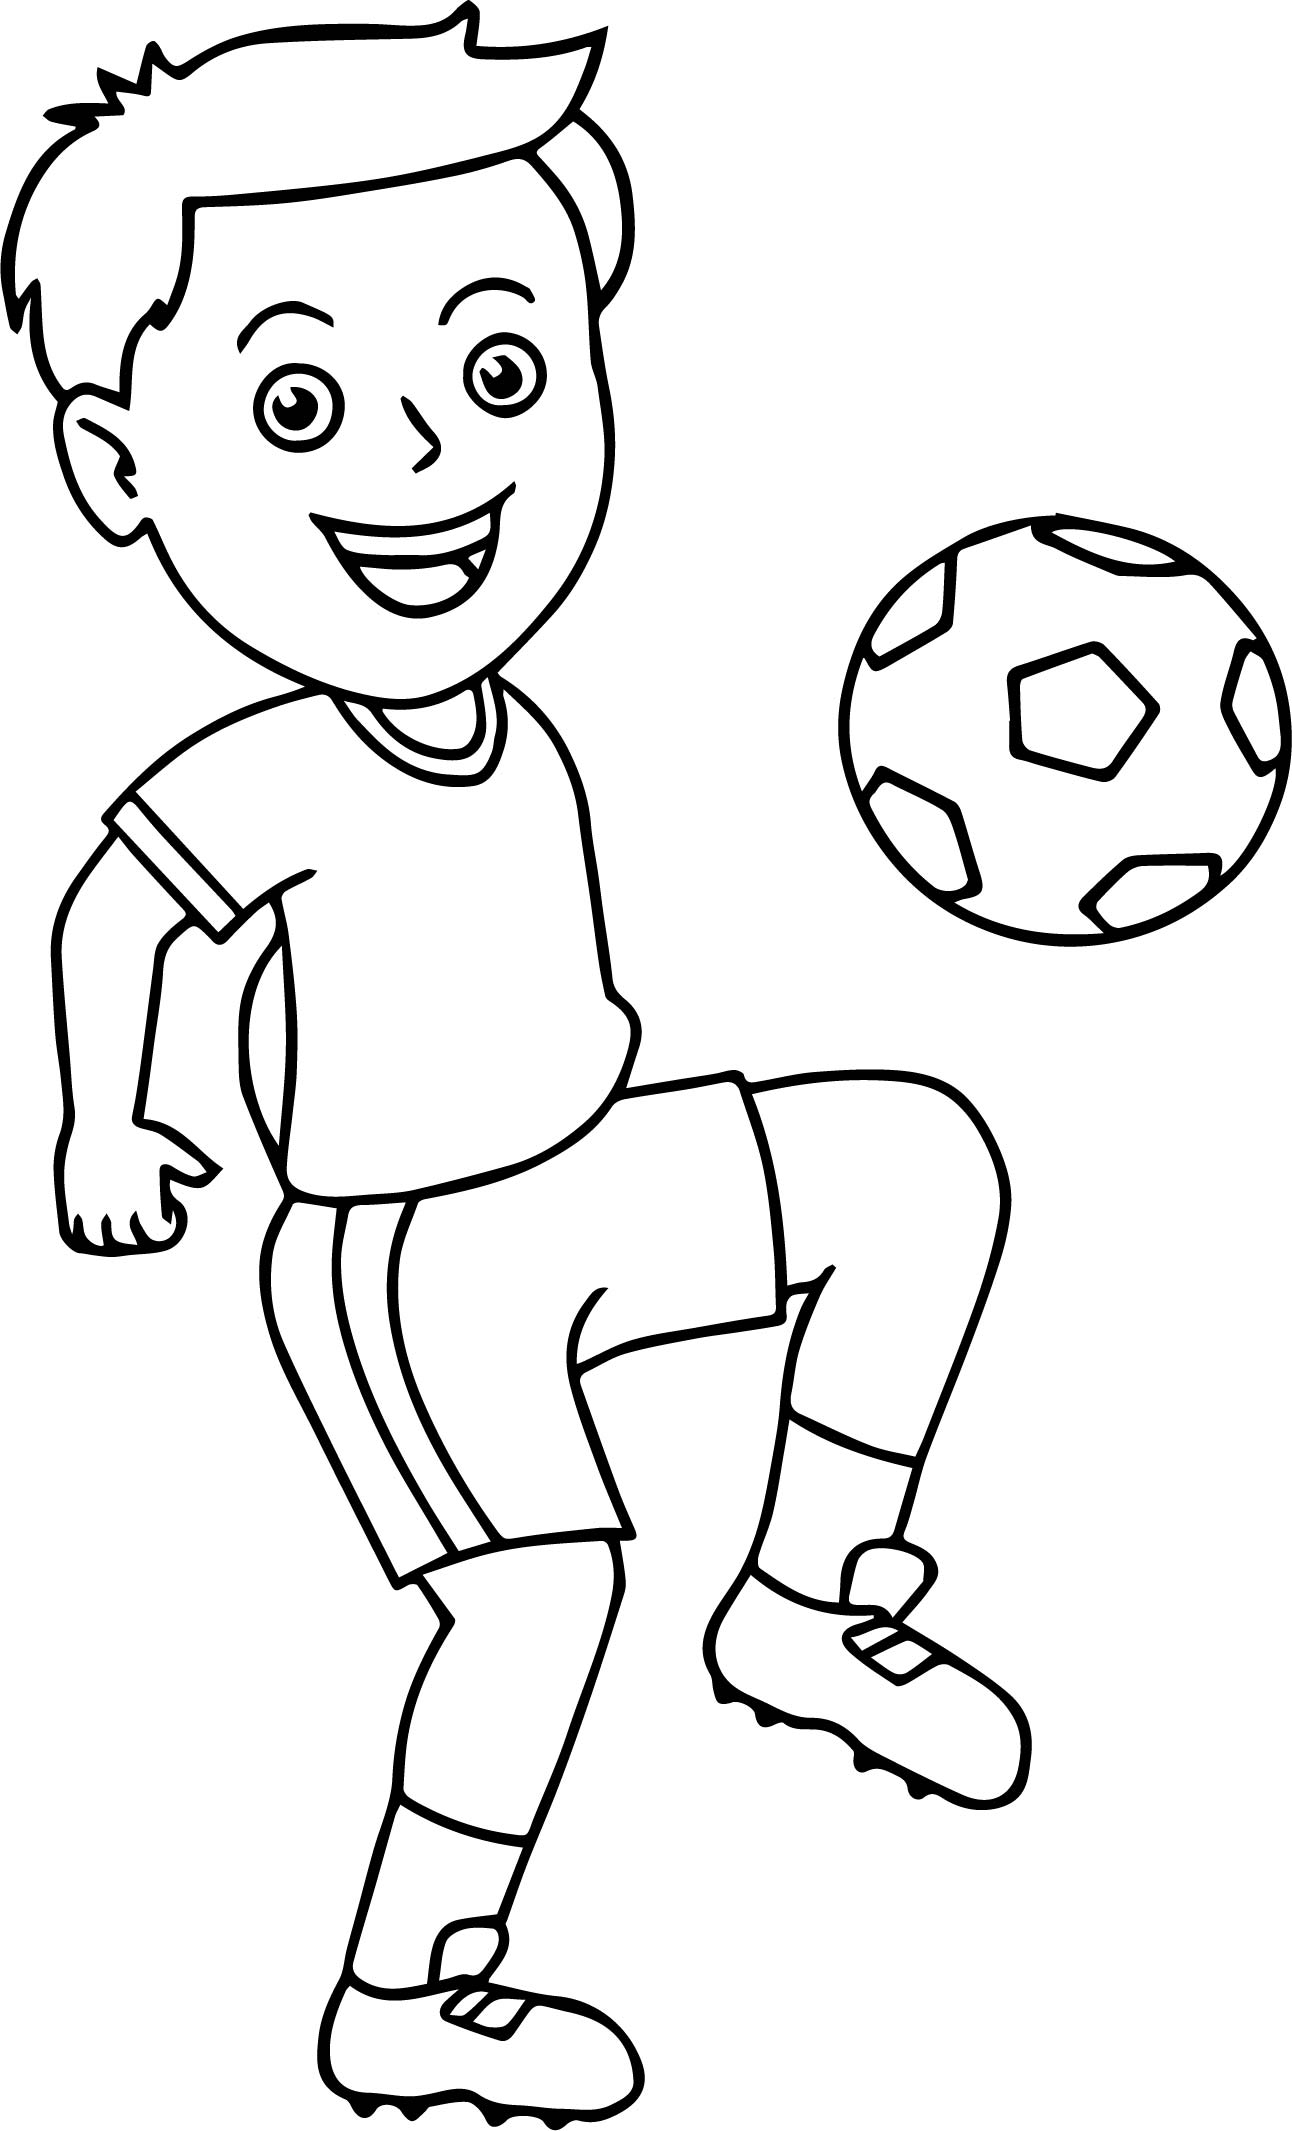 Soccer Boy Bouncing Soccer Ball On His Knee Playing